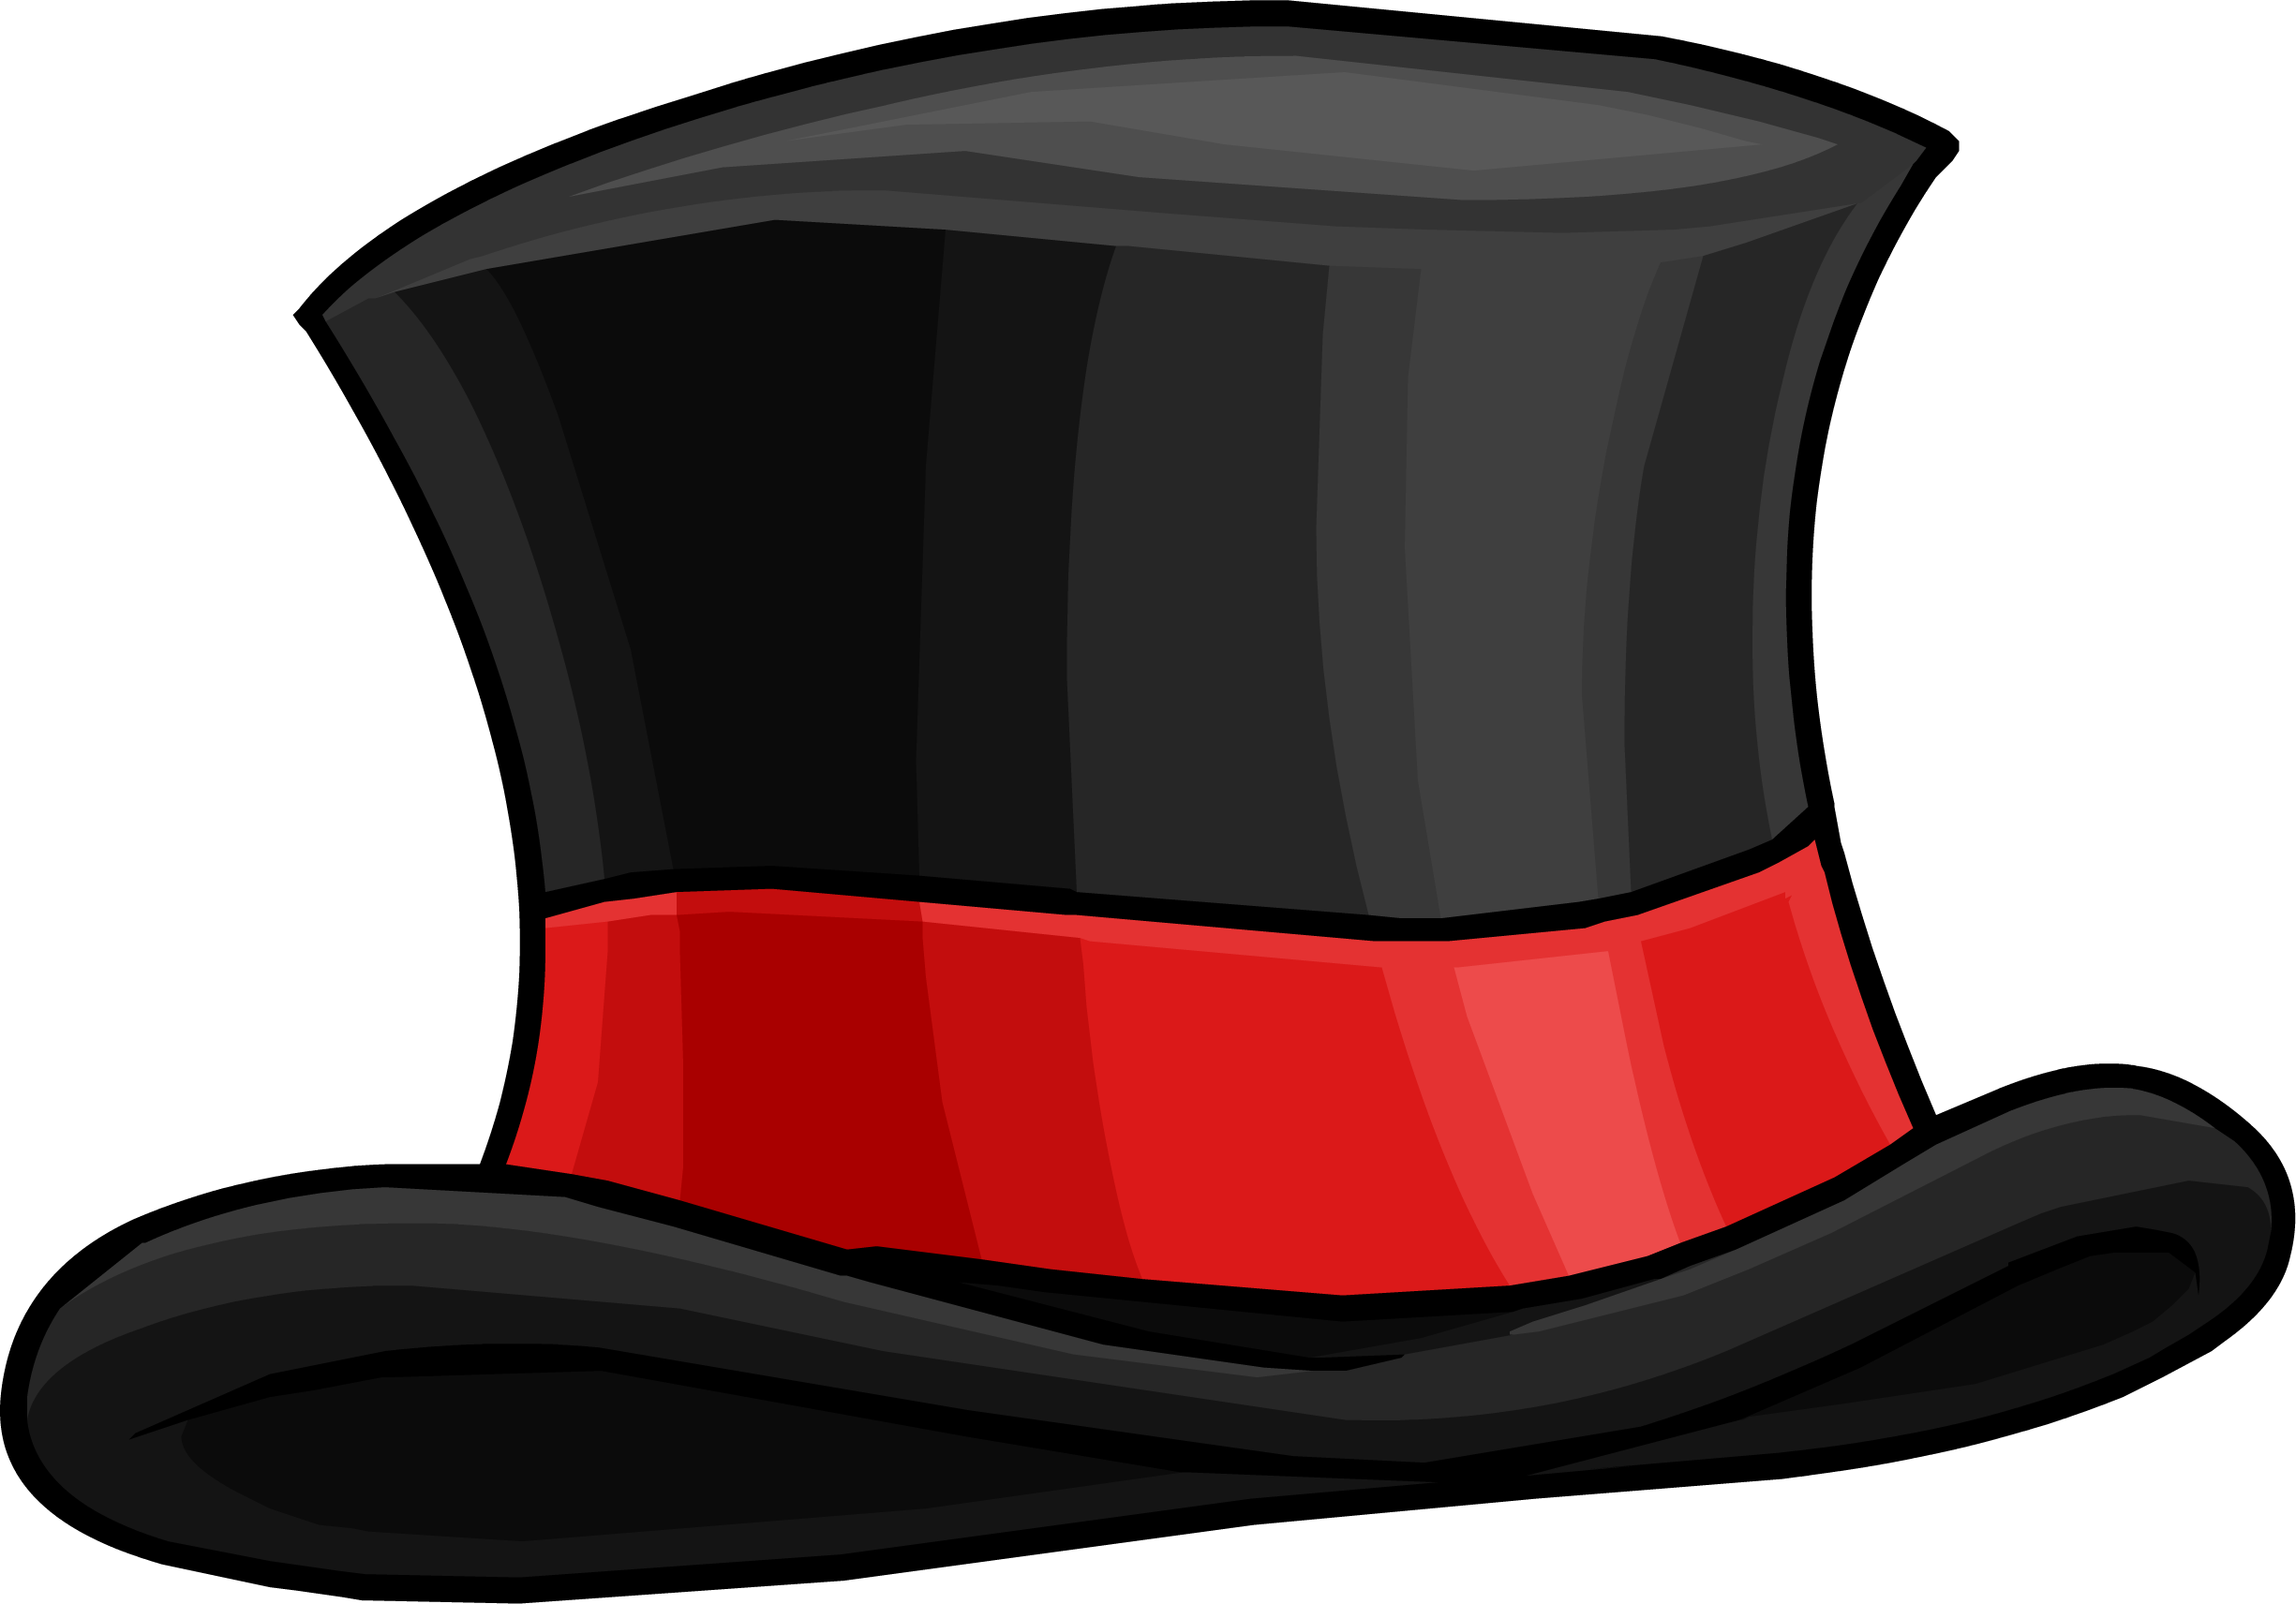 Top Hat (Puffle Hat)